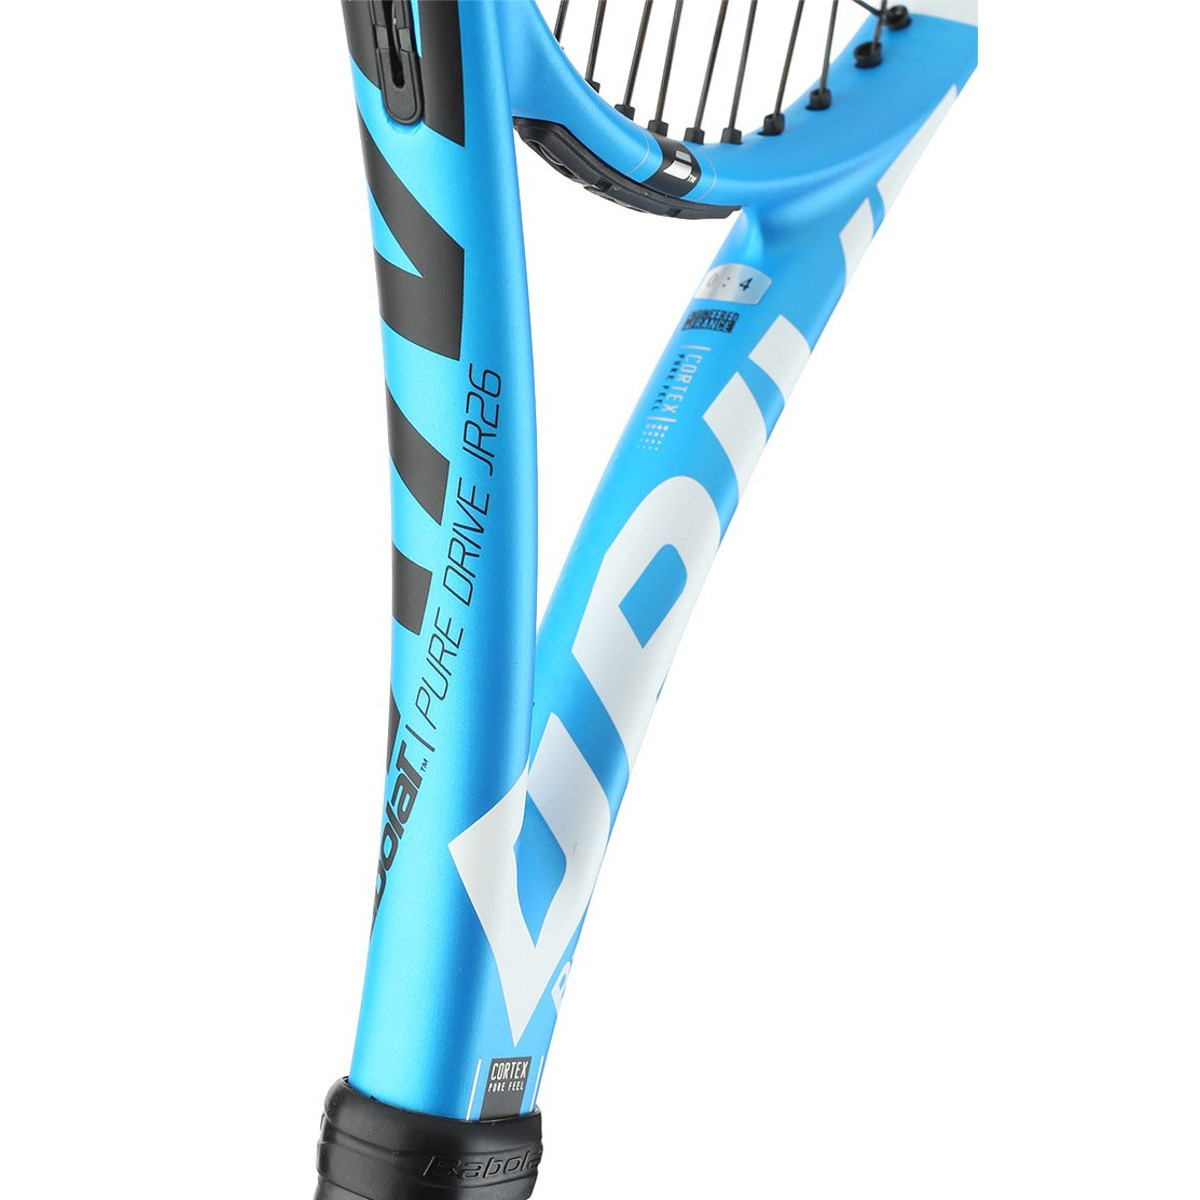 Теннисная ракетка BABOLAT PURE DRIVE JUNIOR 26 2018. Фото �2